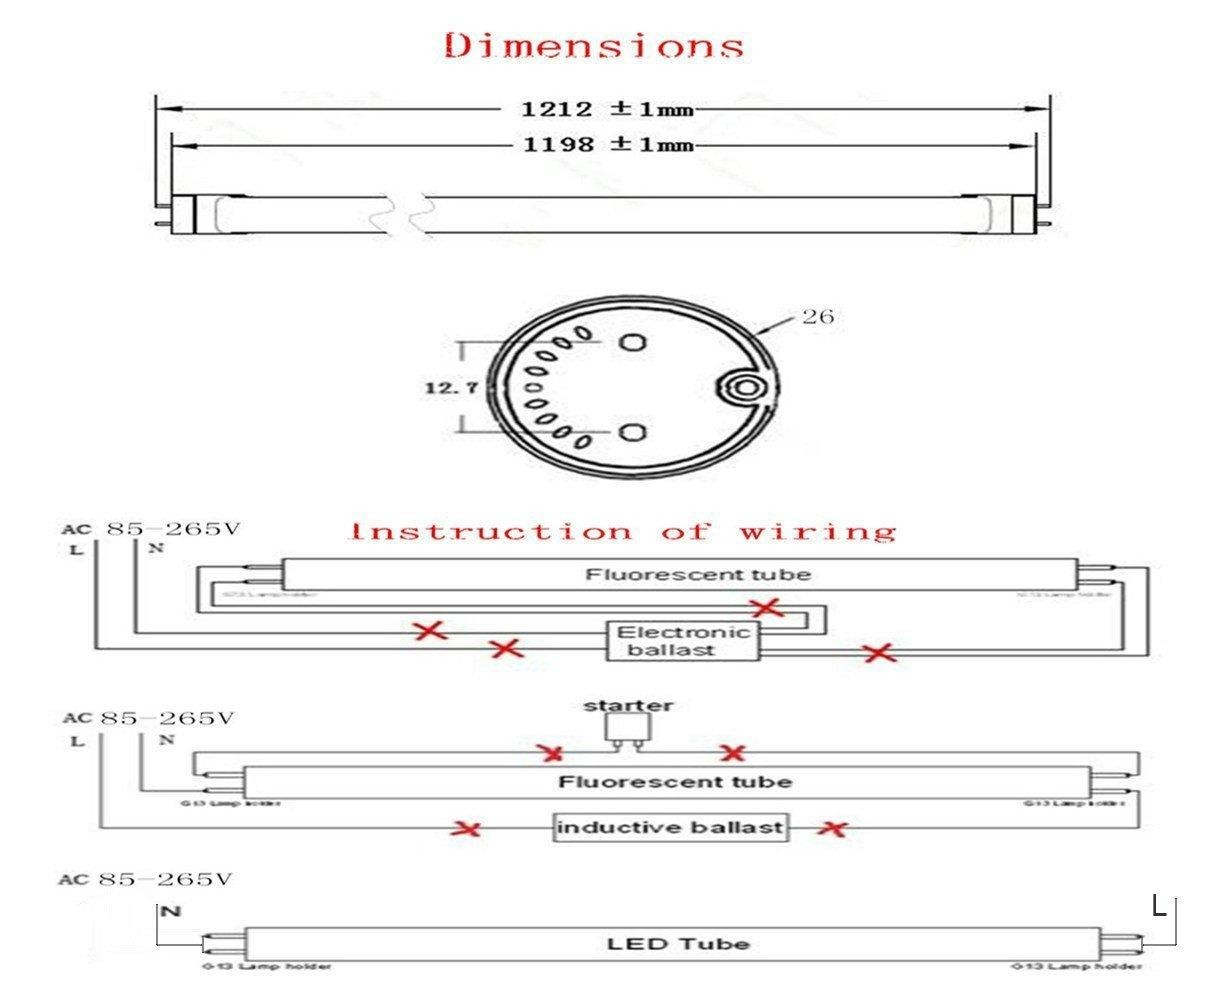 t8 led tube wiring diagram Collection The installation of T8 linear constant current LED tube DOWNLOAD Wiring Diagram Pics Detail Name t8 led tube